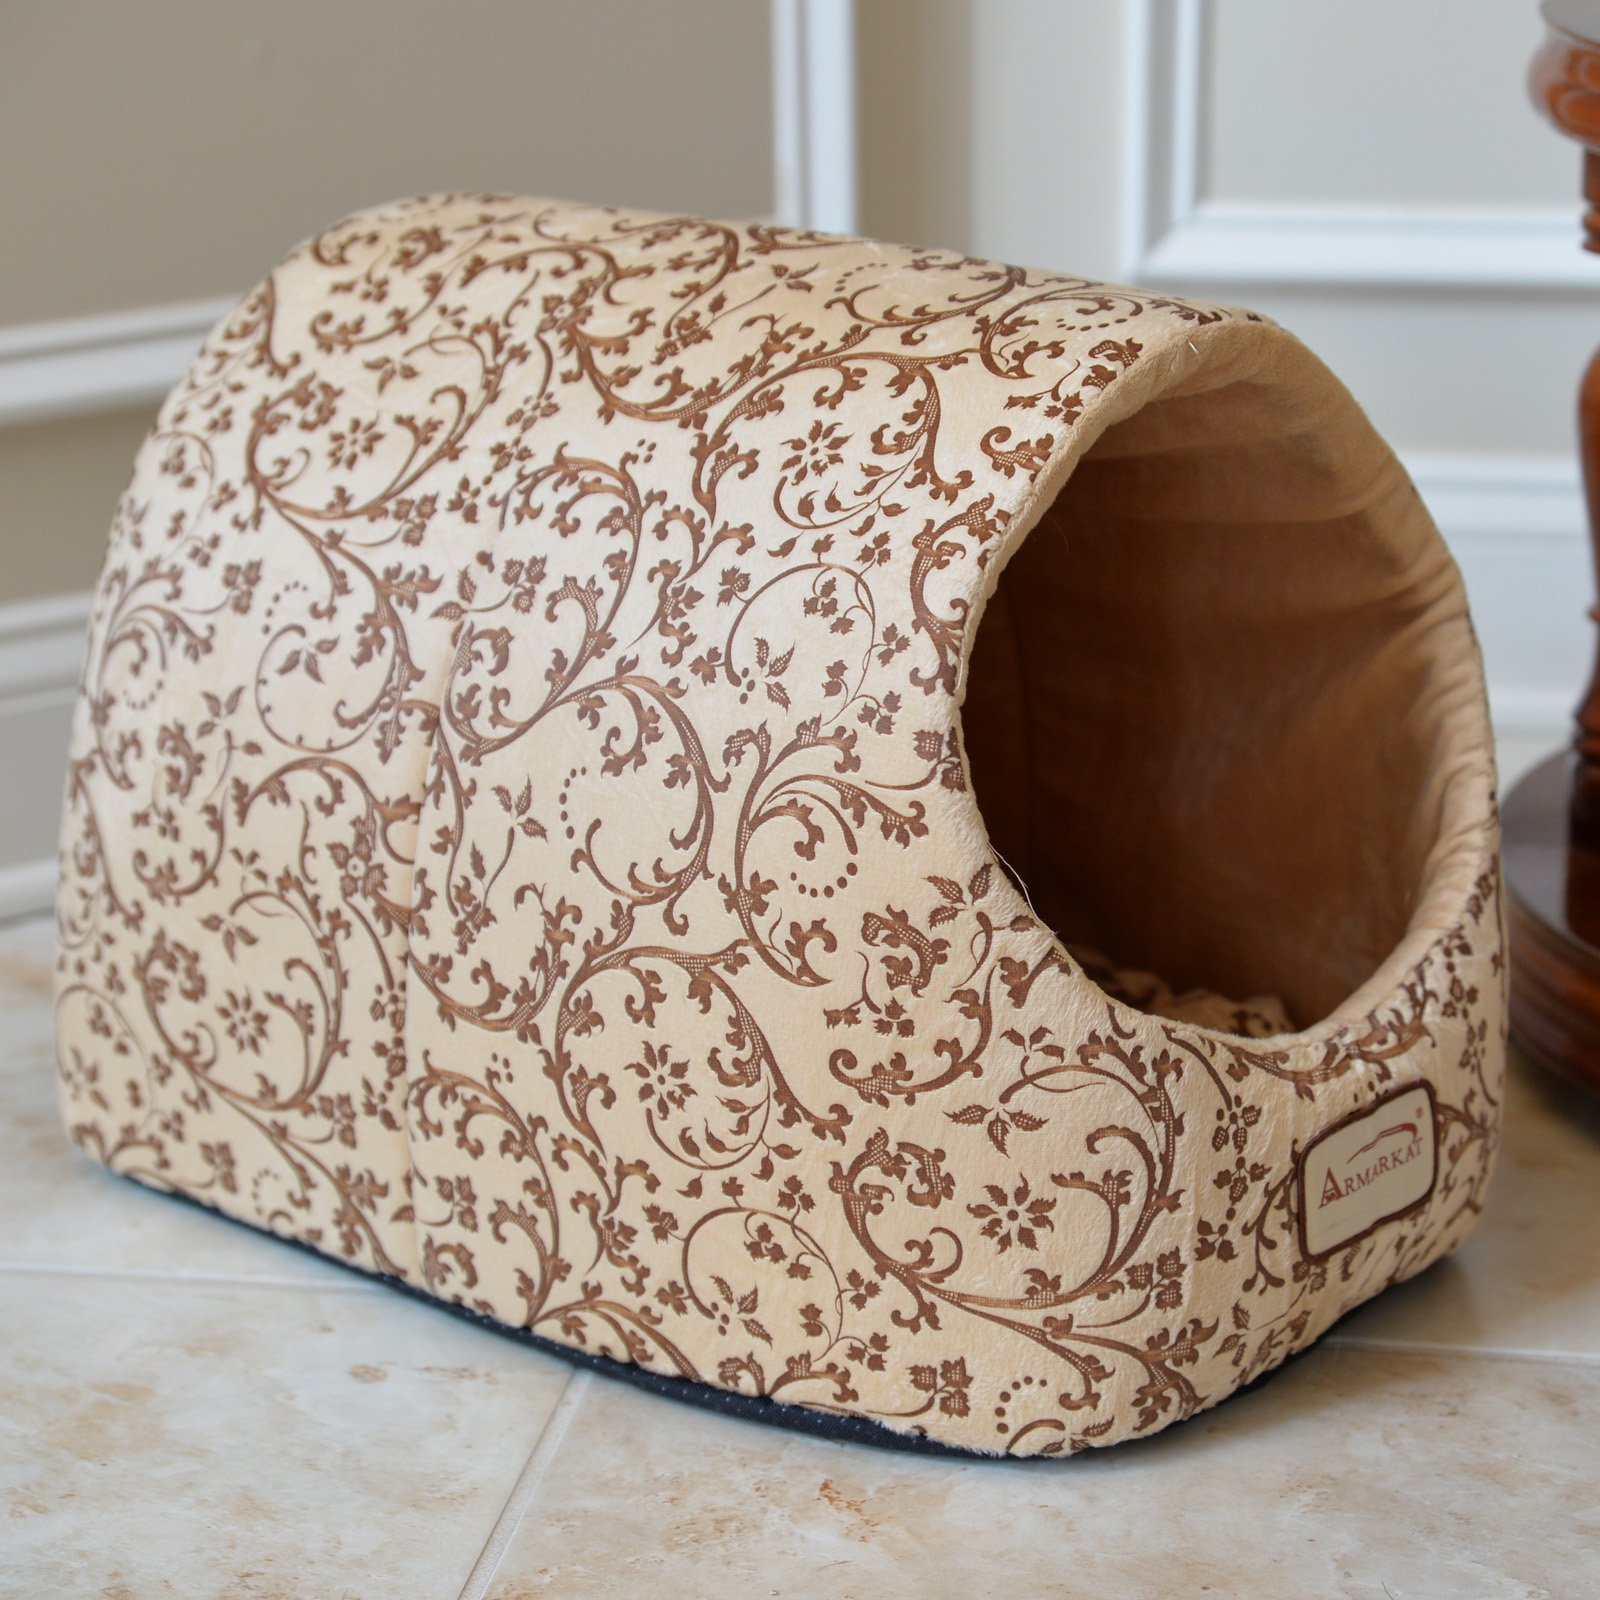 Armarkat Cat Bed with Flower Pattern, Beige, C11HYH/MH